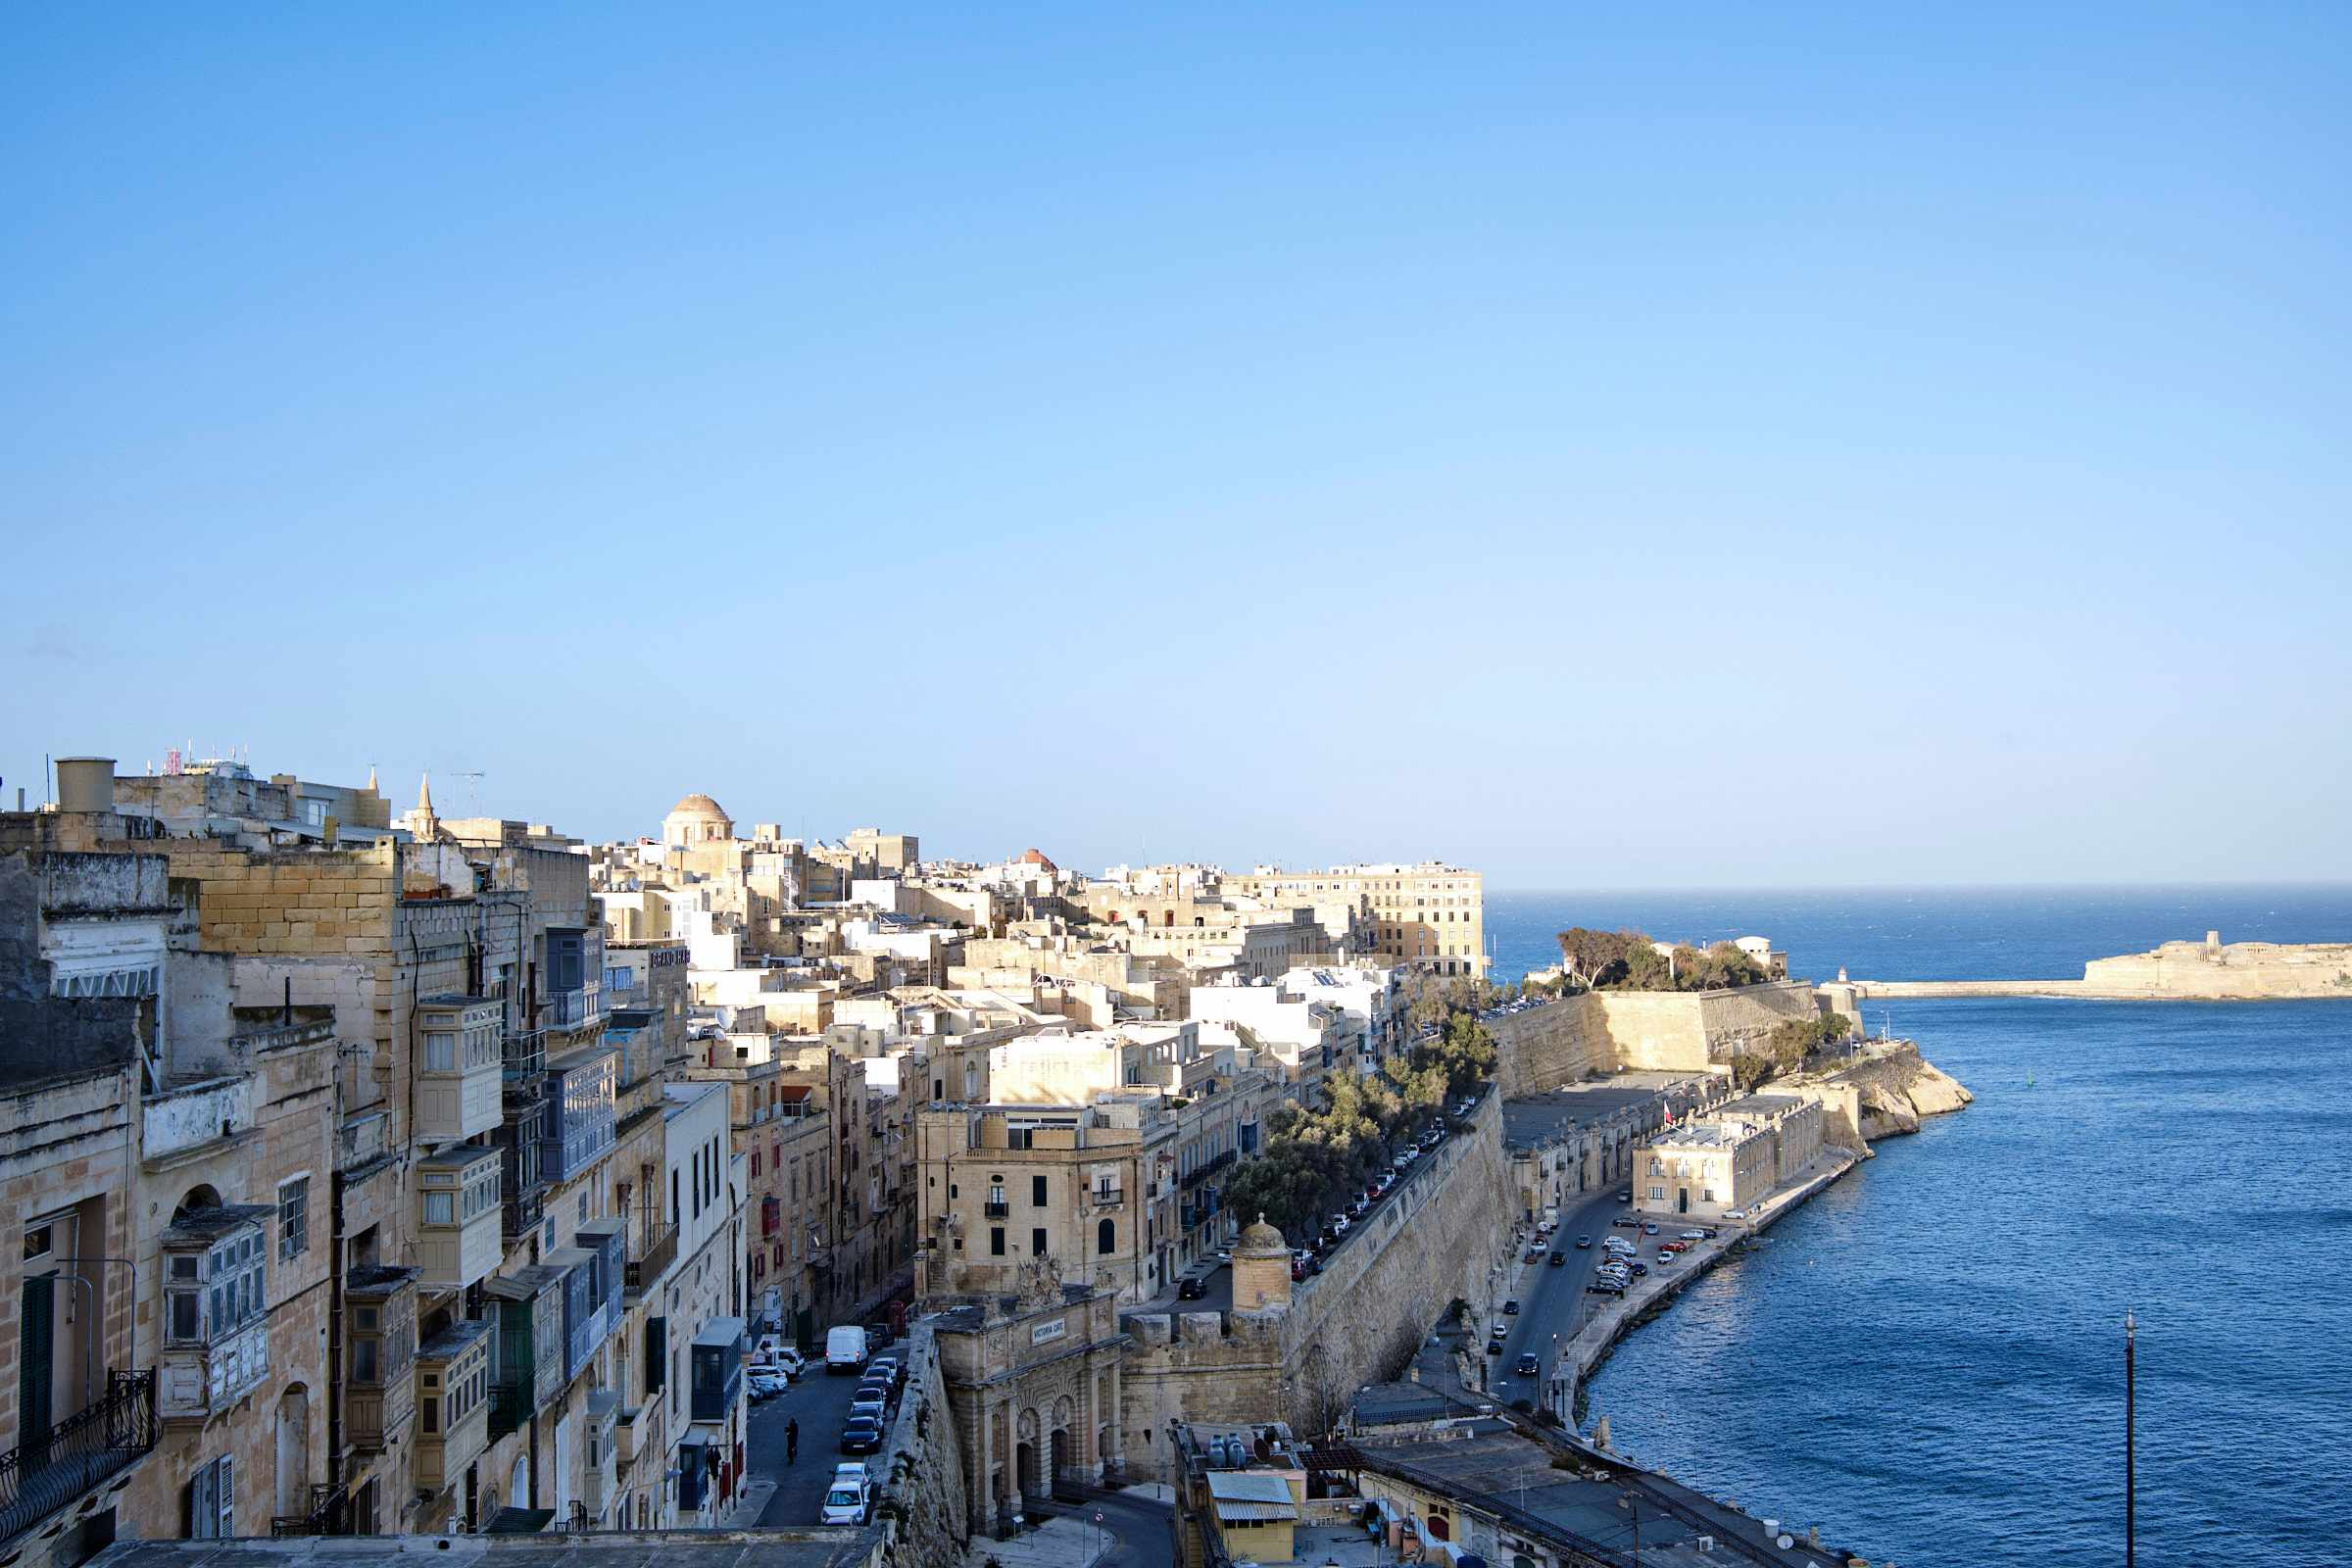 An overview of Valletta city with old buildings and the harbour